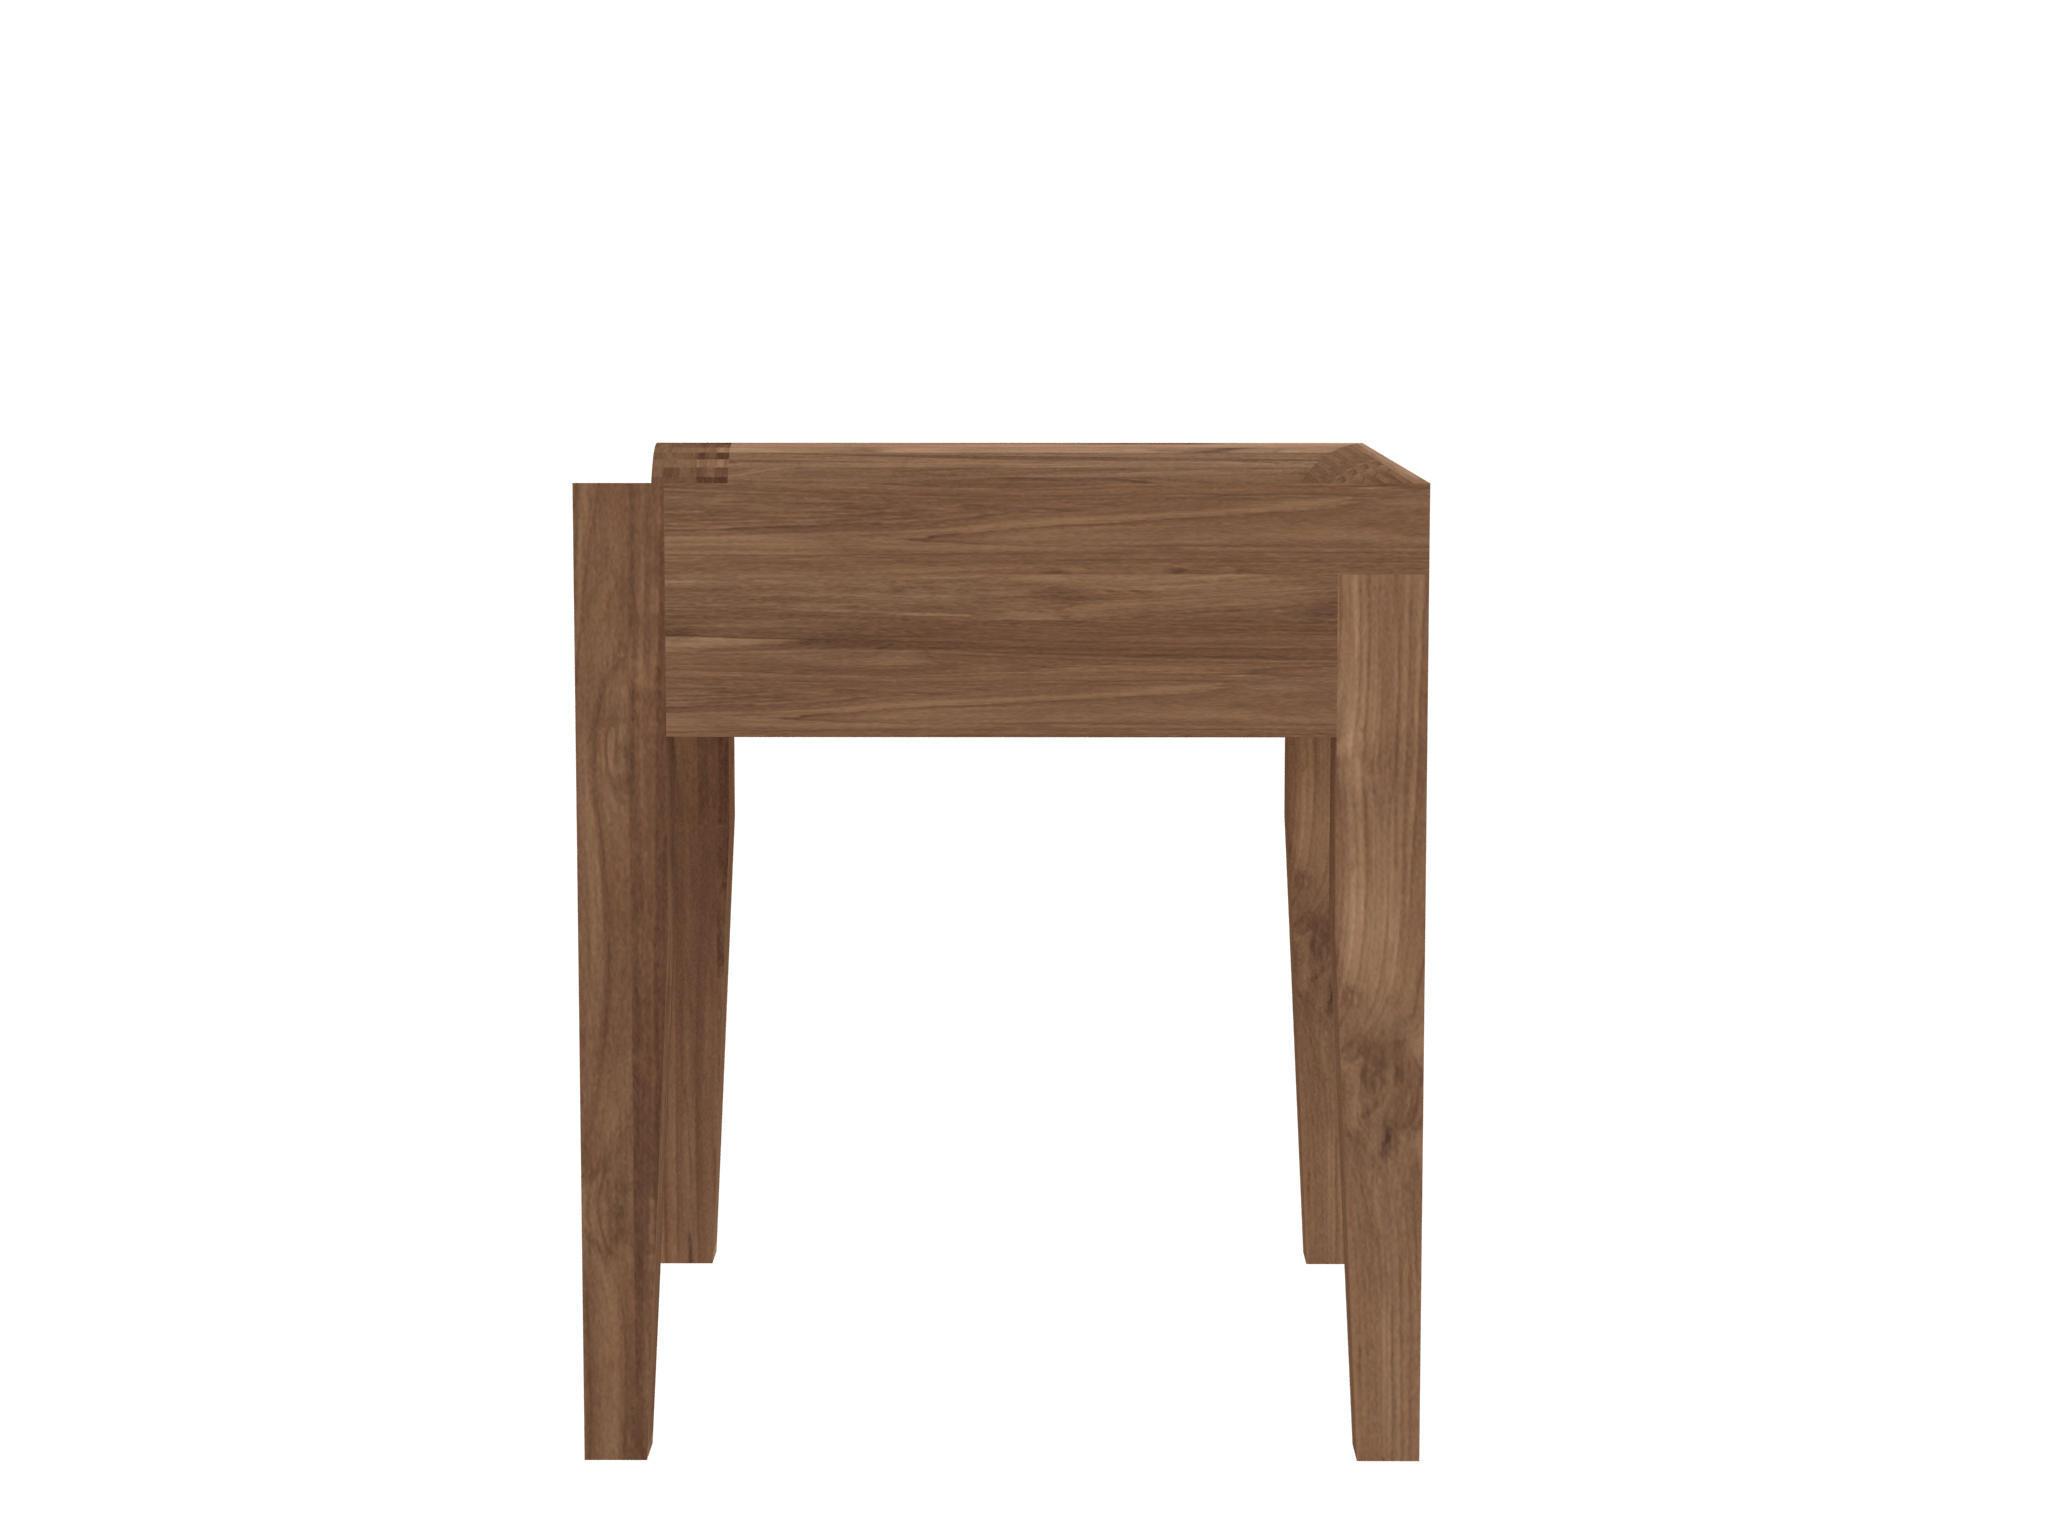 Six Sense Ieper Ethnicraft Teak Cuba chair 51x47x55